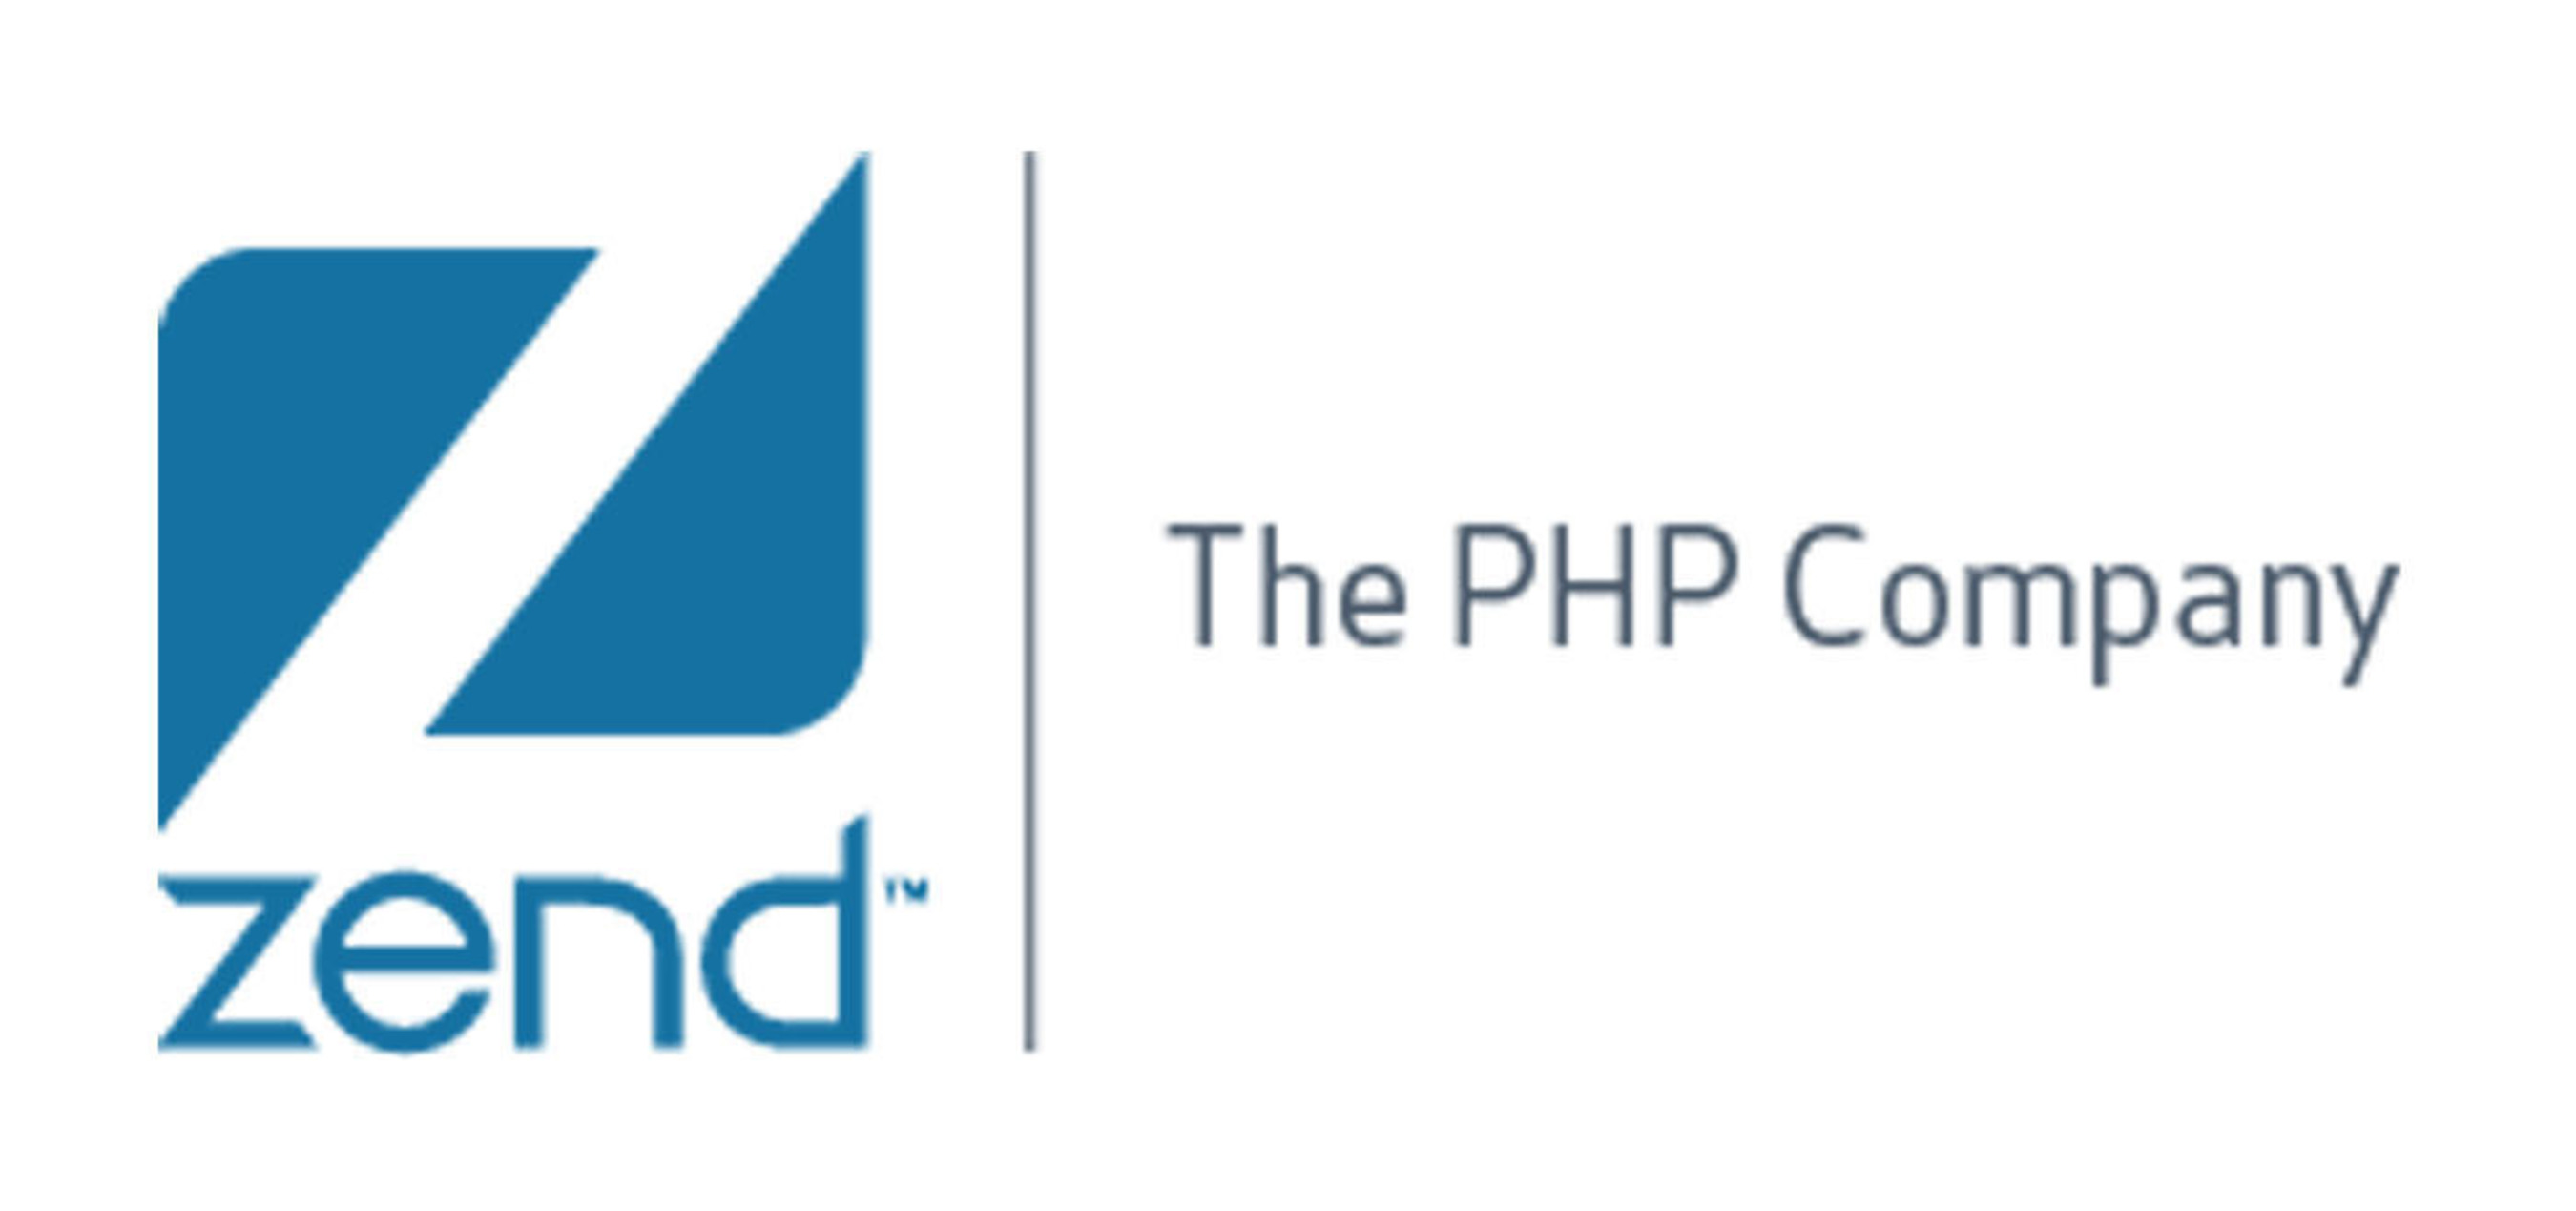 Zend Celebrates 'The Year of PHP' at Expanded ZendCon, the Largest Global Gathering of the PHP Community